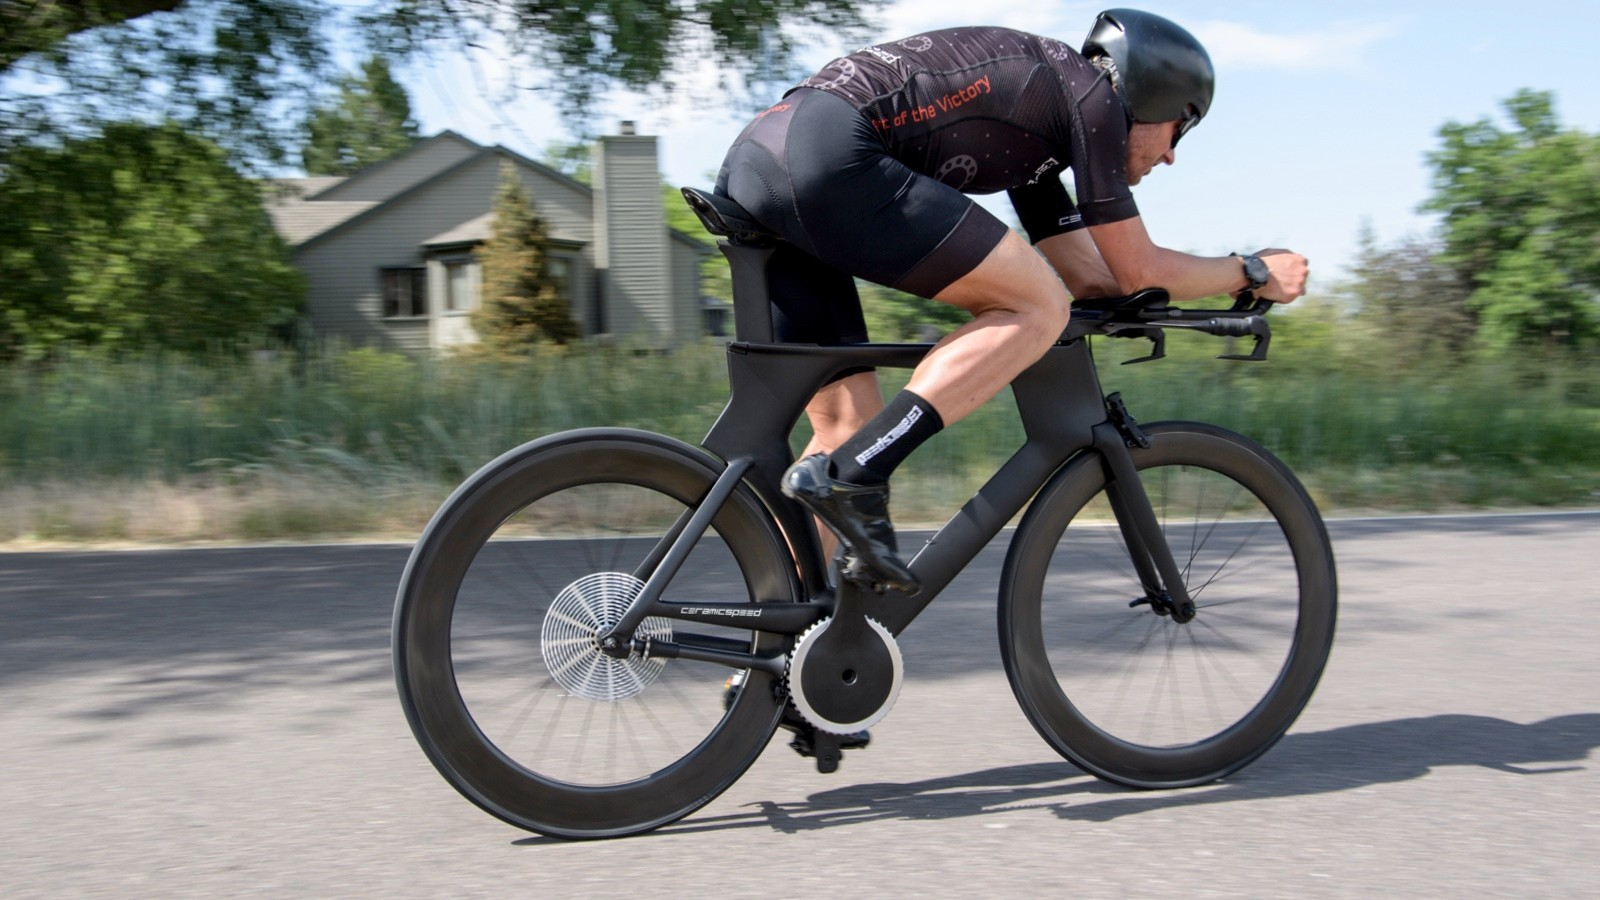 There is not yet a shifting system developed, but CeramicSpeed says an electronic motor inside the drive shaft could execute the shifts